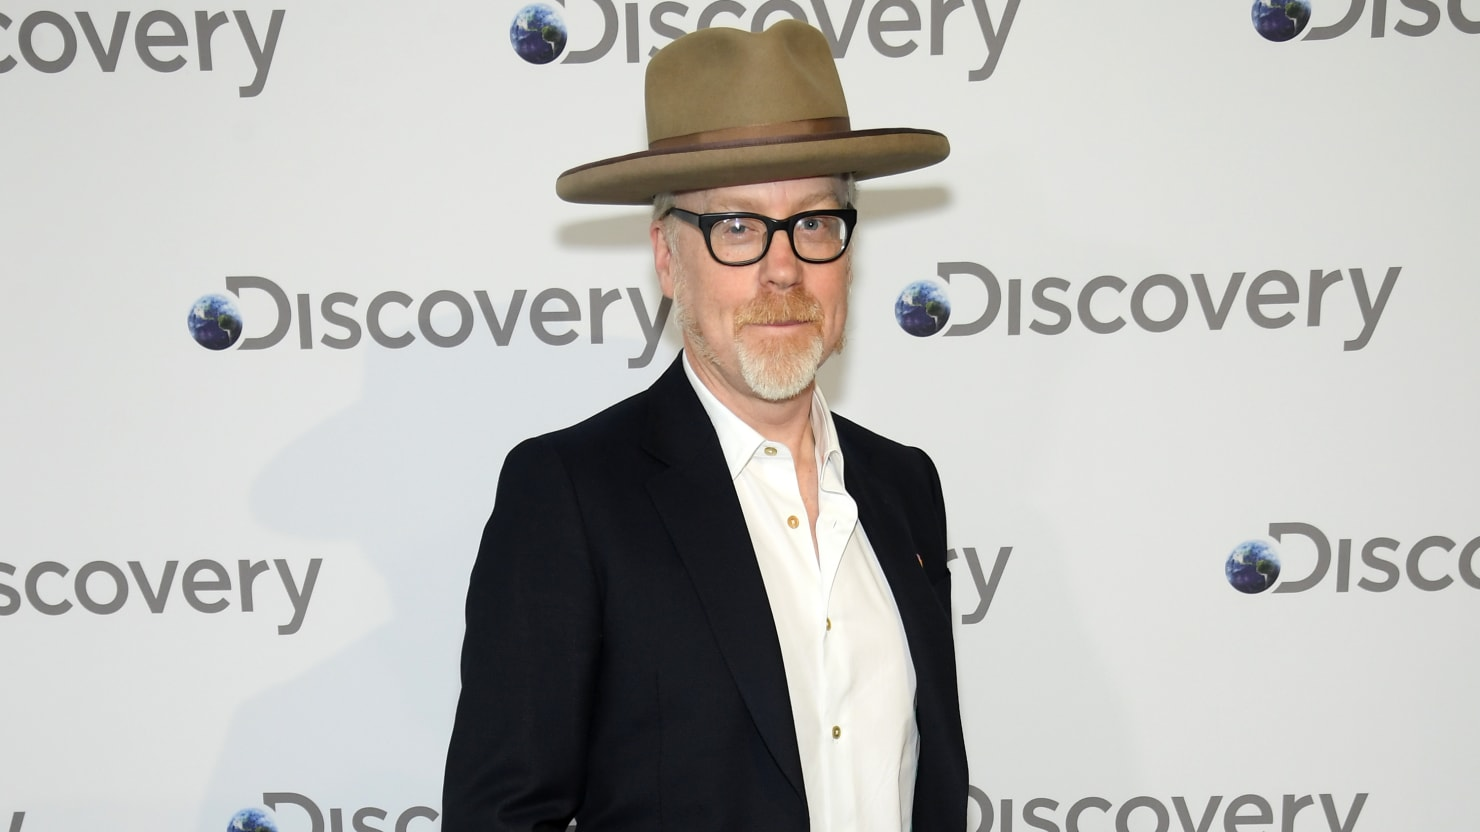 Sister of 'Mythbusters' Alum Adam Savage Accuses Him of Raping Her in the 1970s